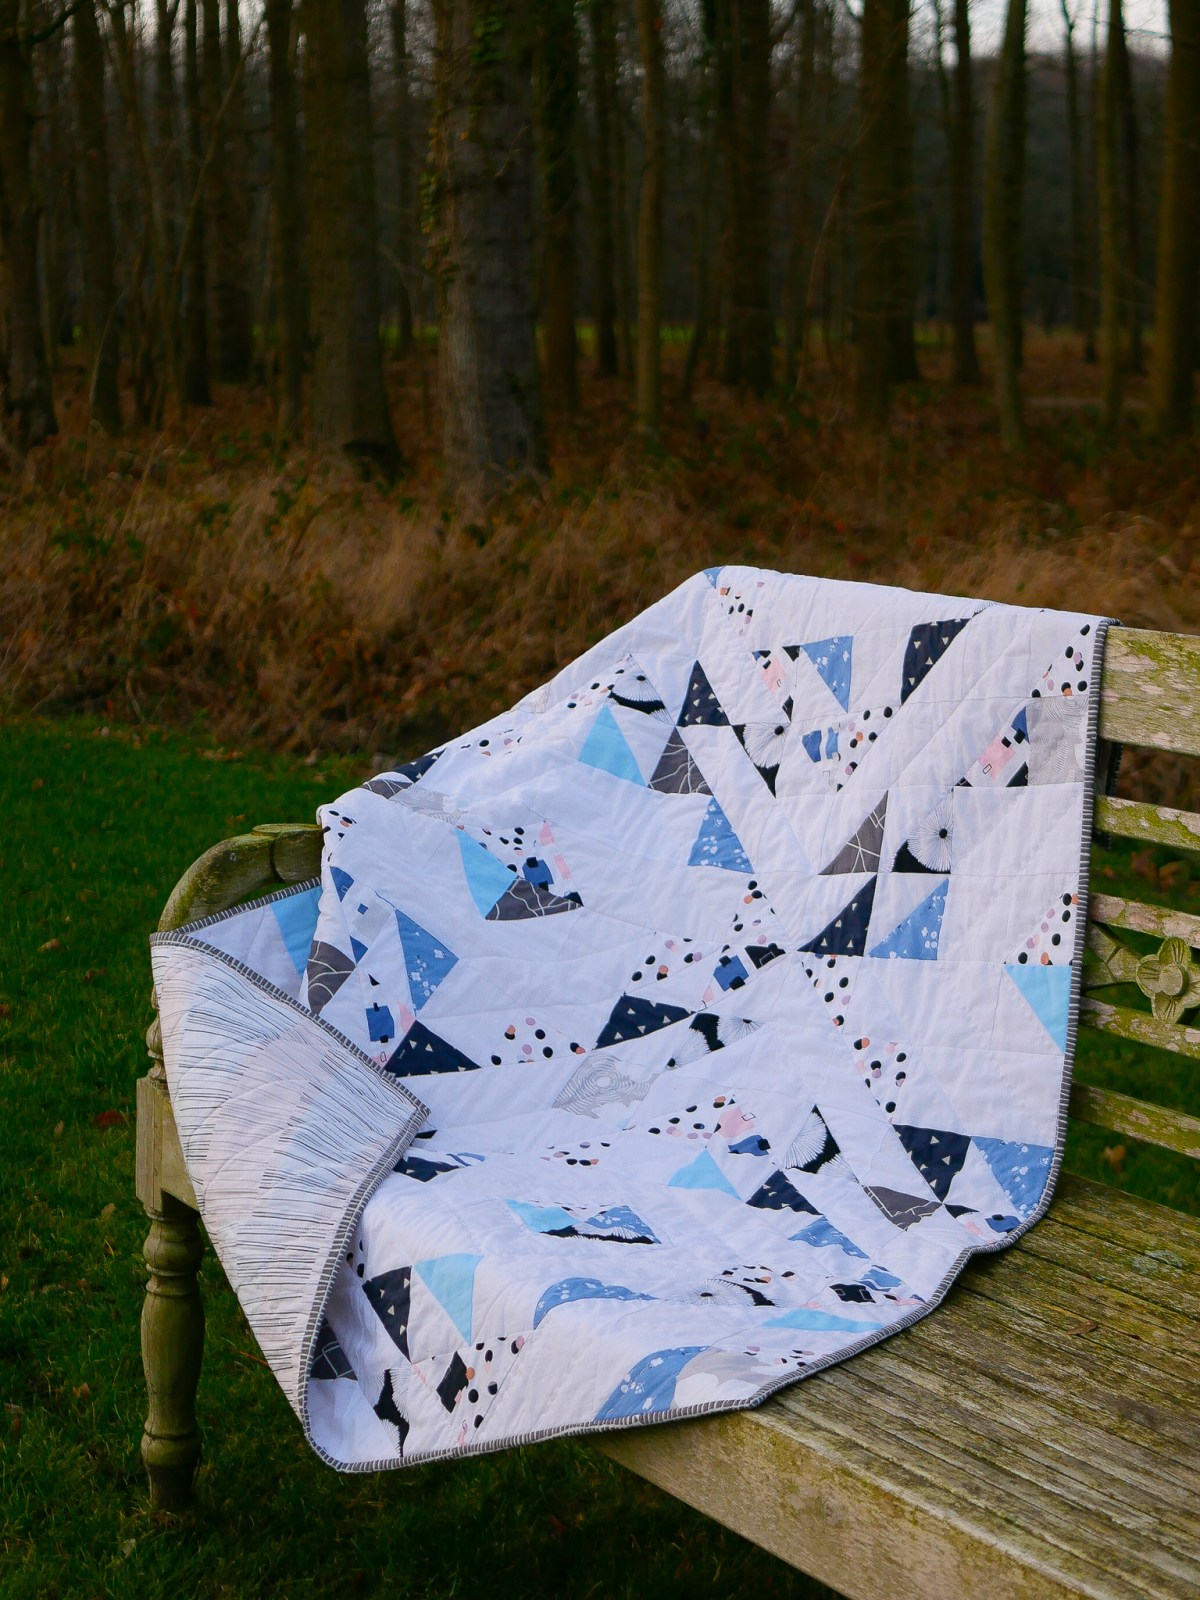 Time to sew baby quilt for charity